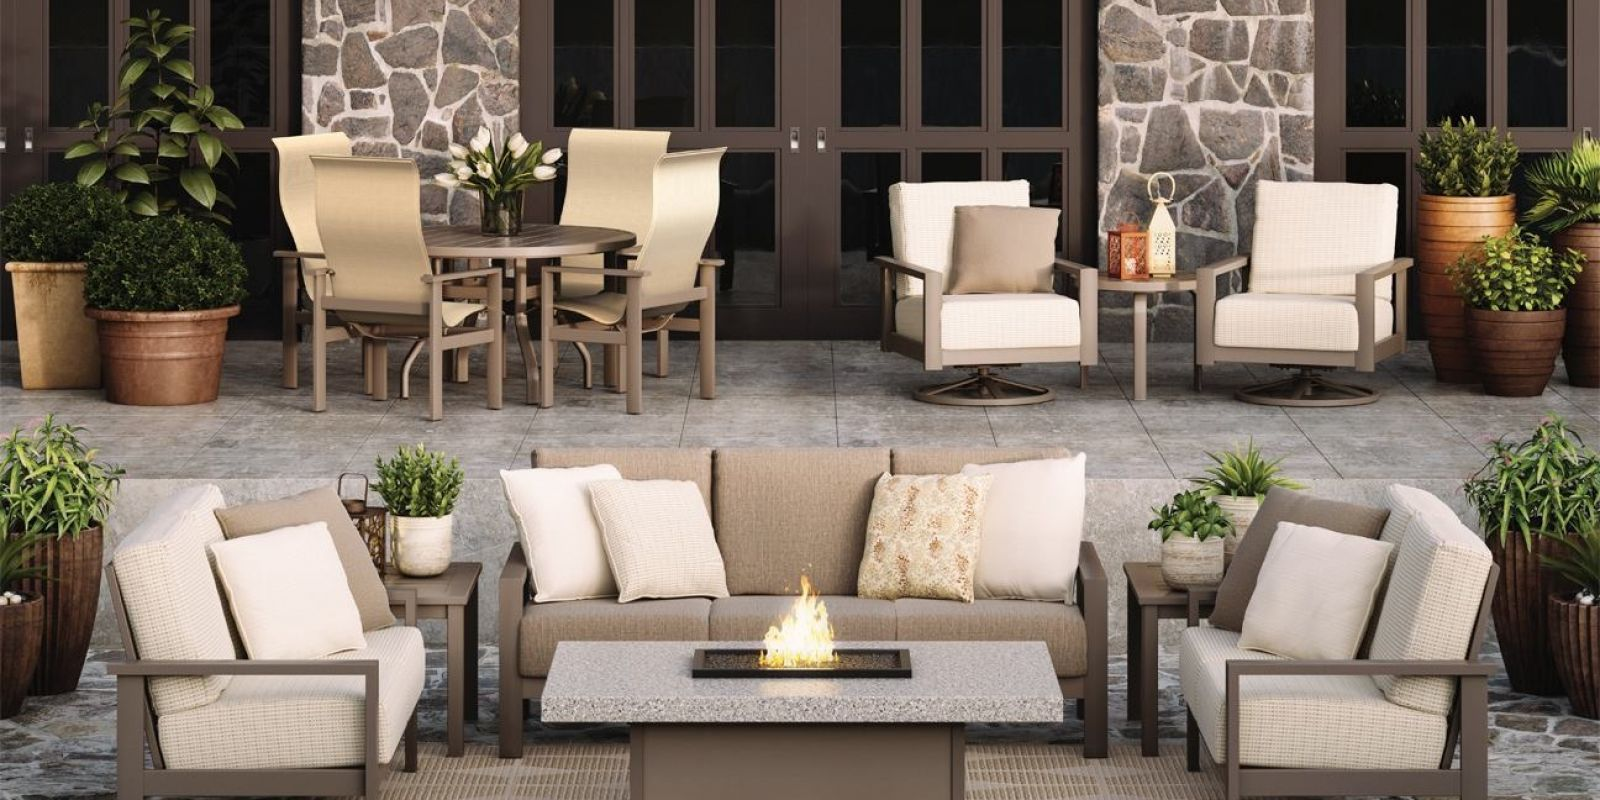 Outdoor Furniture | American Casual Living on Outdoor Living Set id=79711